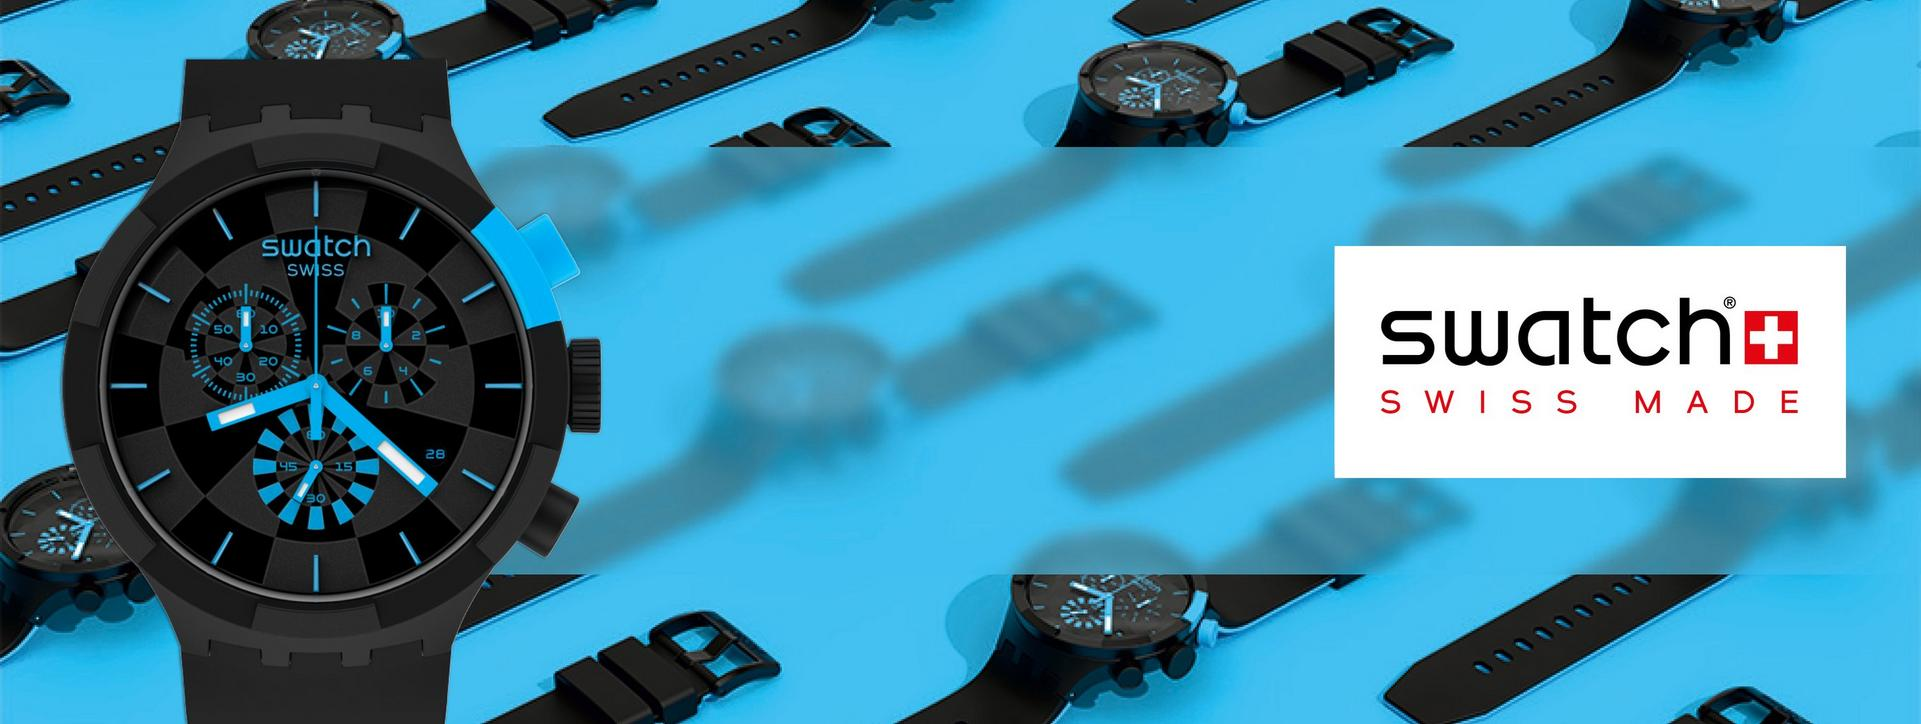 Swatch, Discover the range, Swatch with black face and blue dials